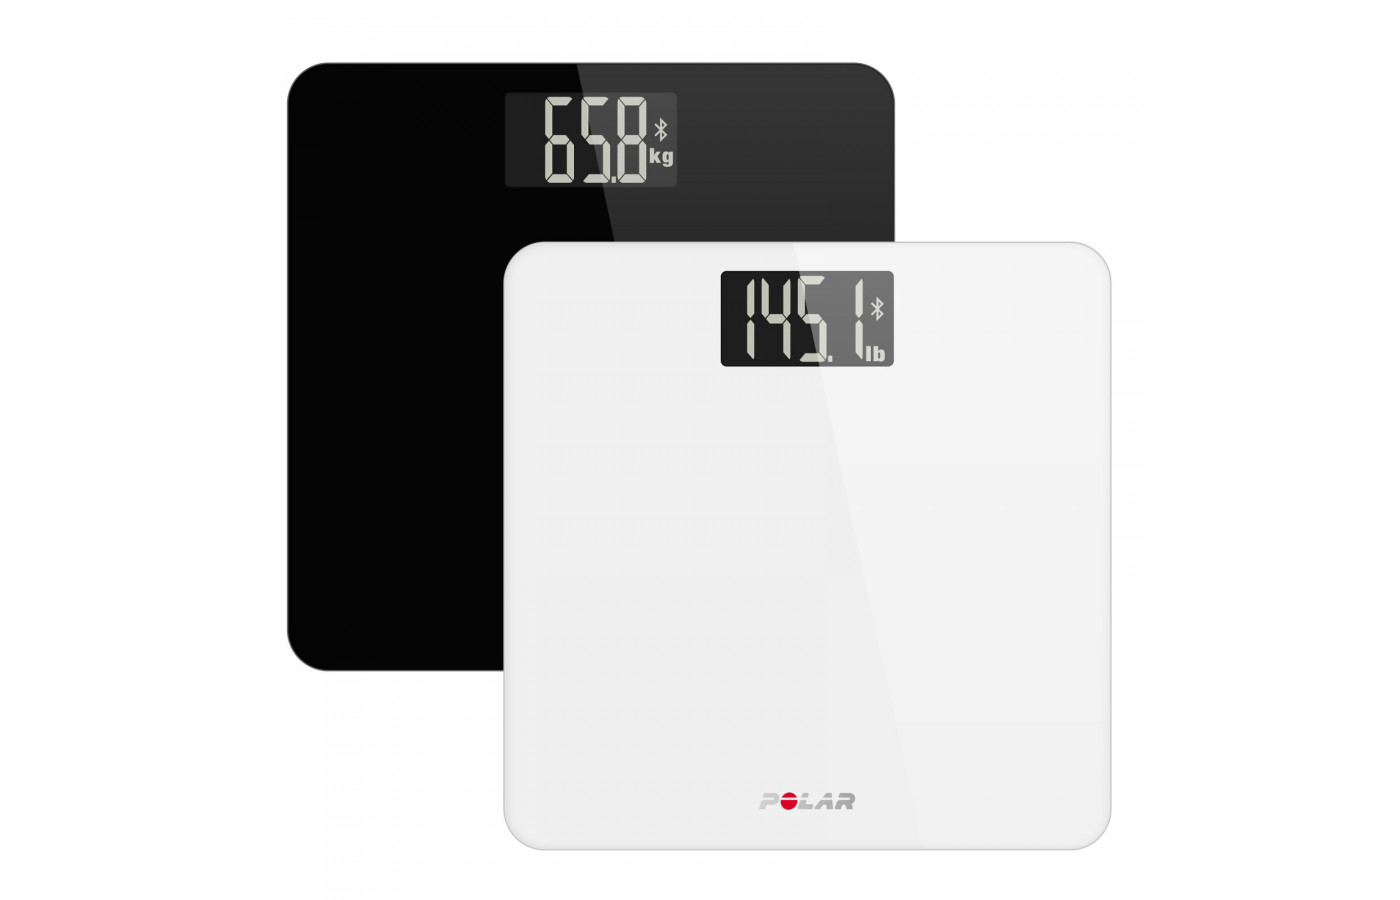 Polar Balance Connected Smart Scale duo